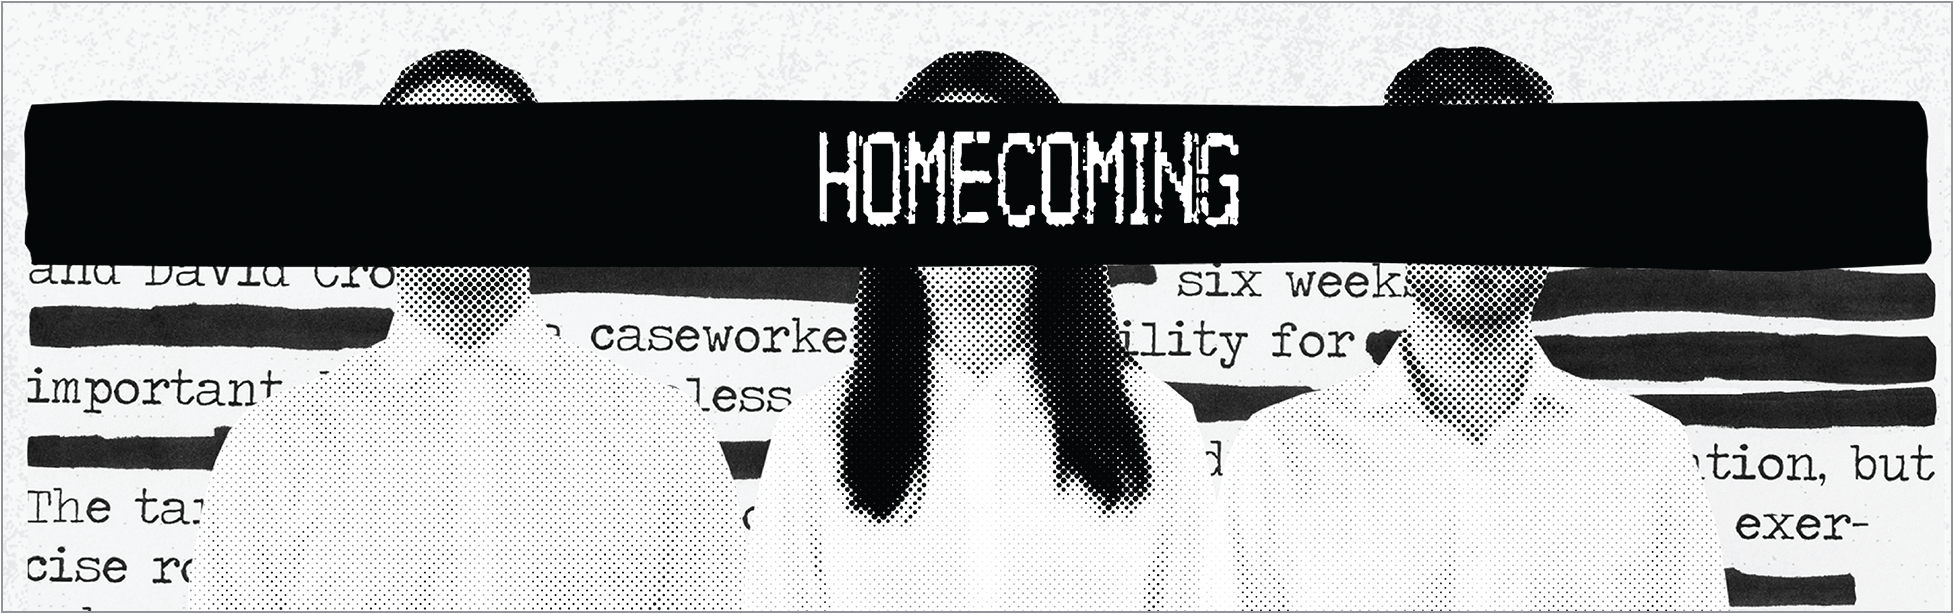 Podcast Tuesday Homecoming